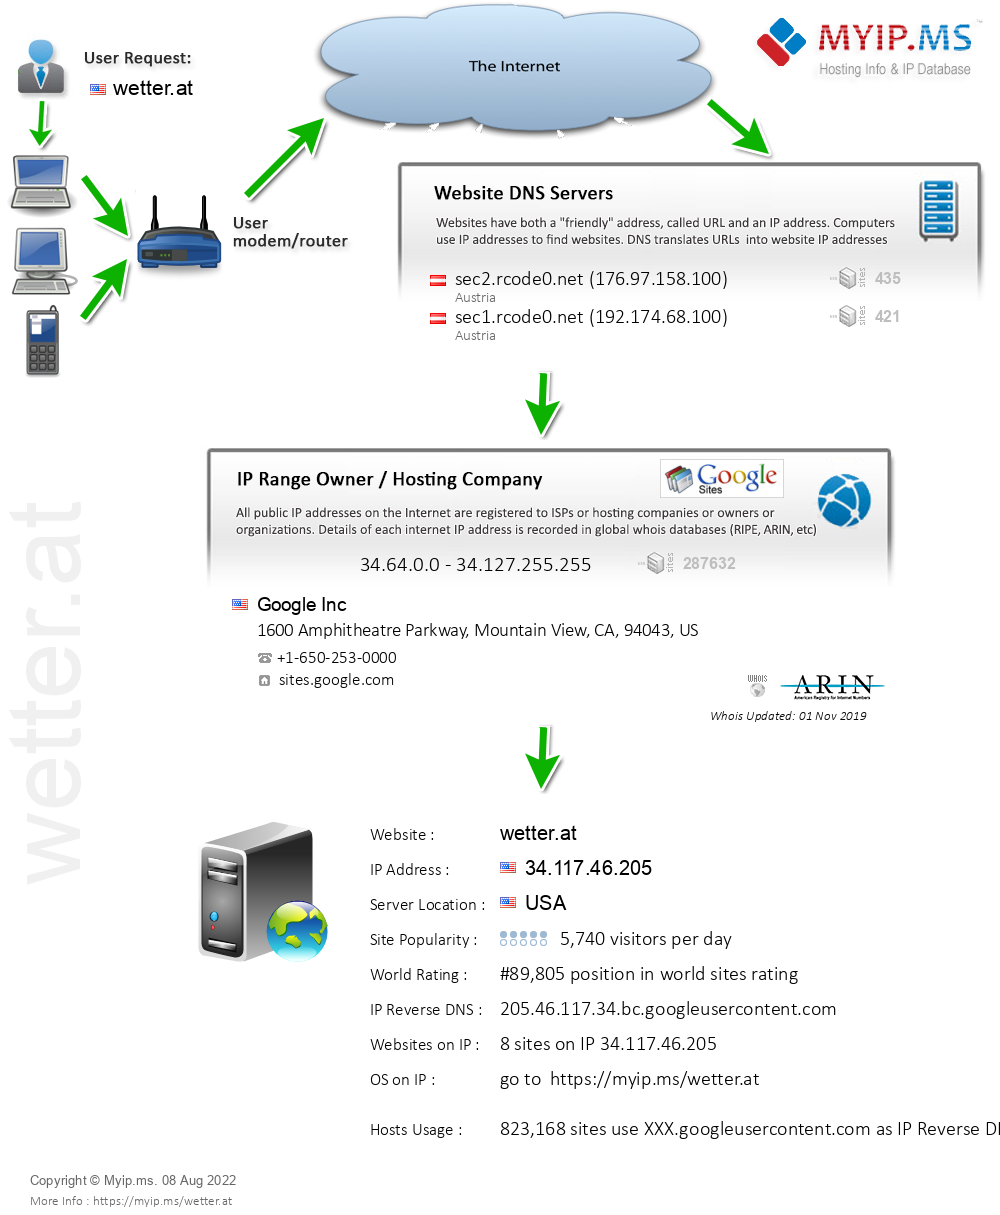 Wetter.at - Website Hosting Visual IP Diagram